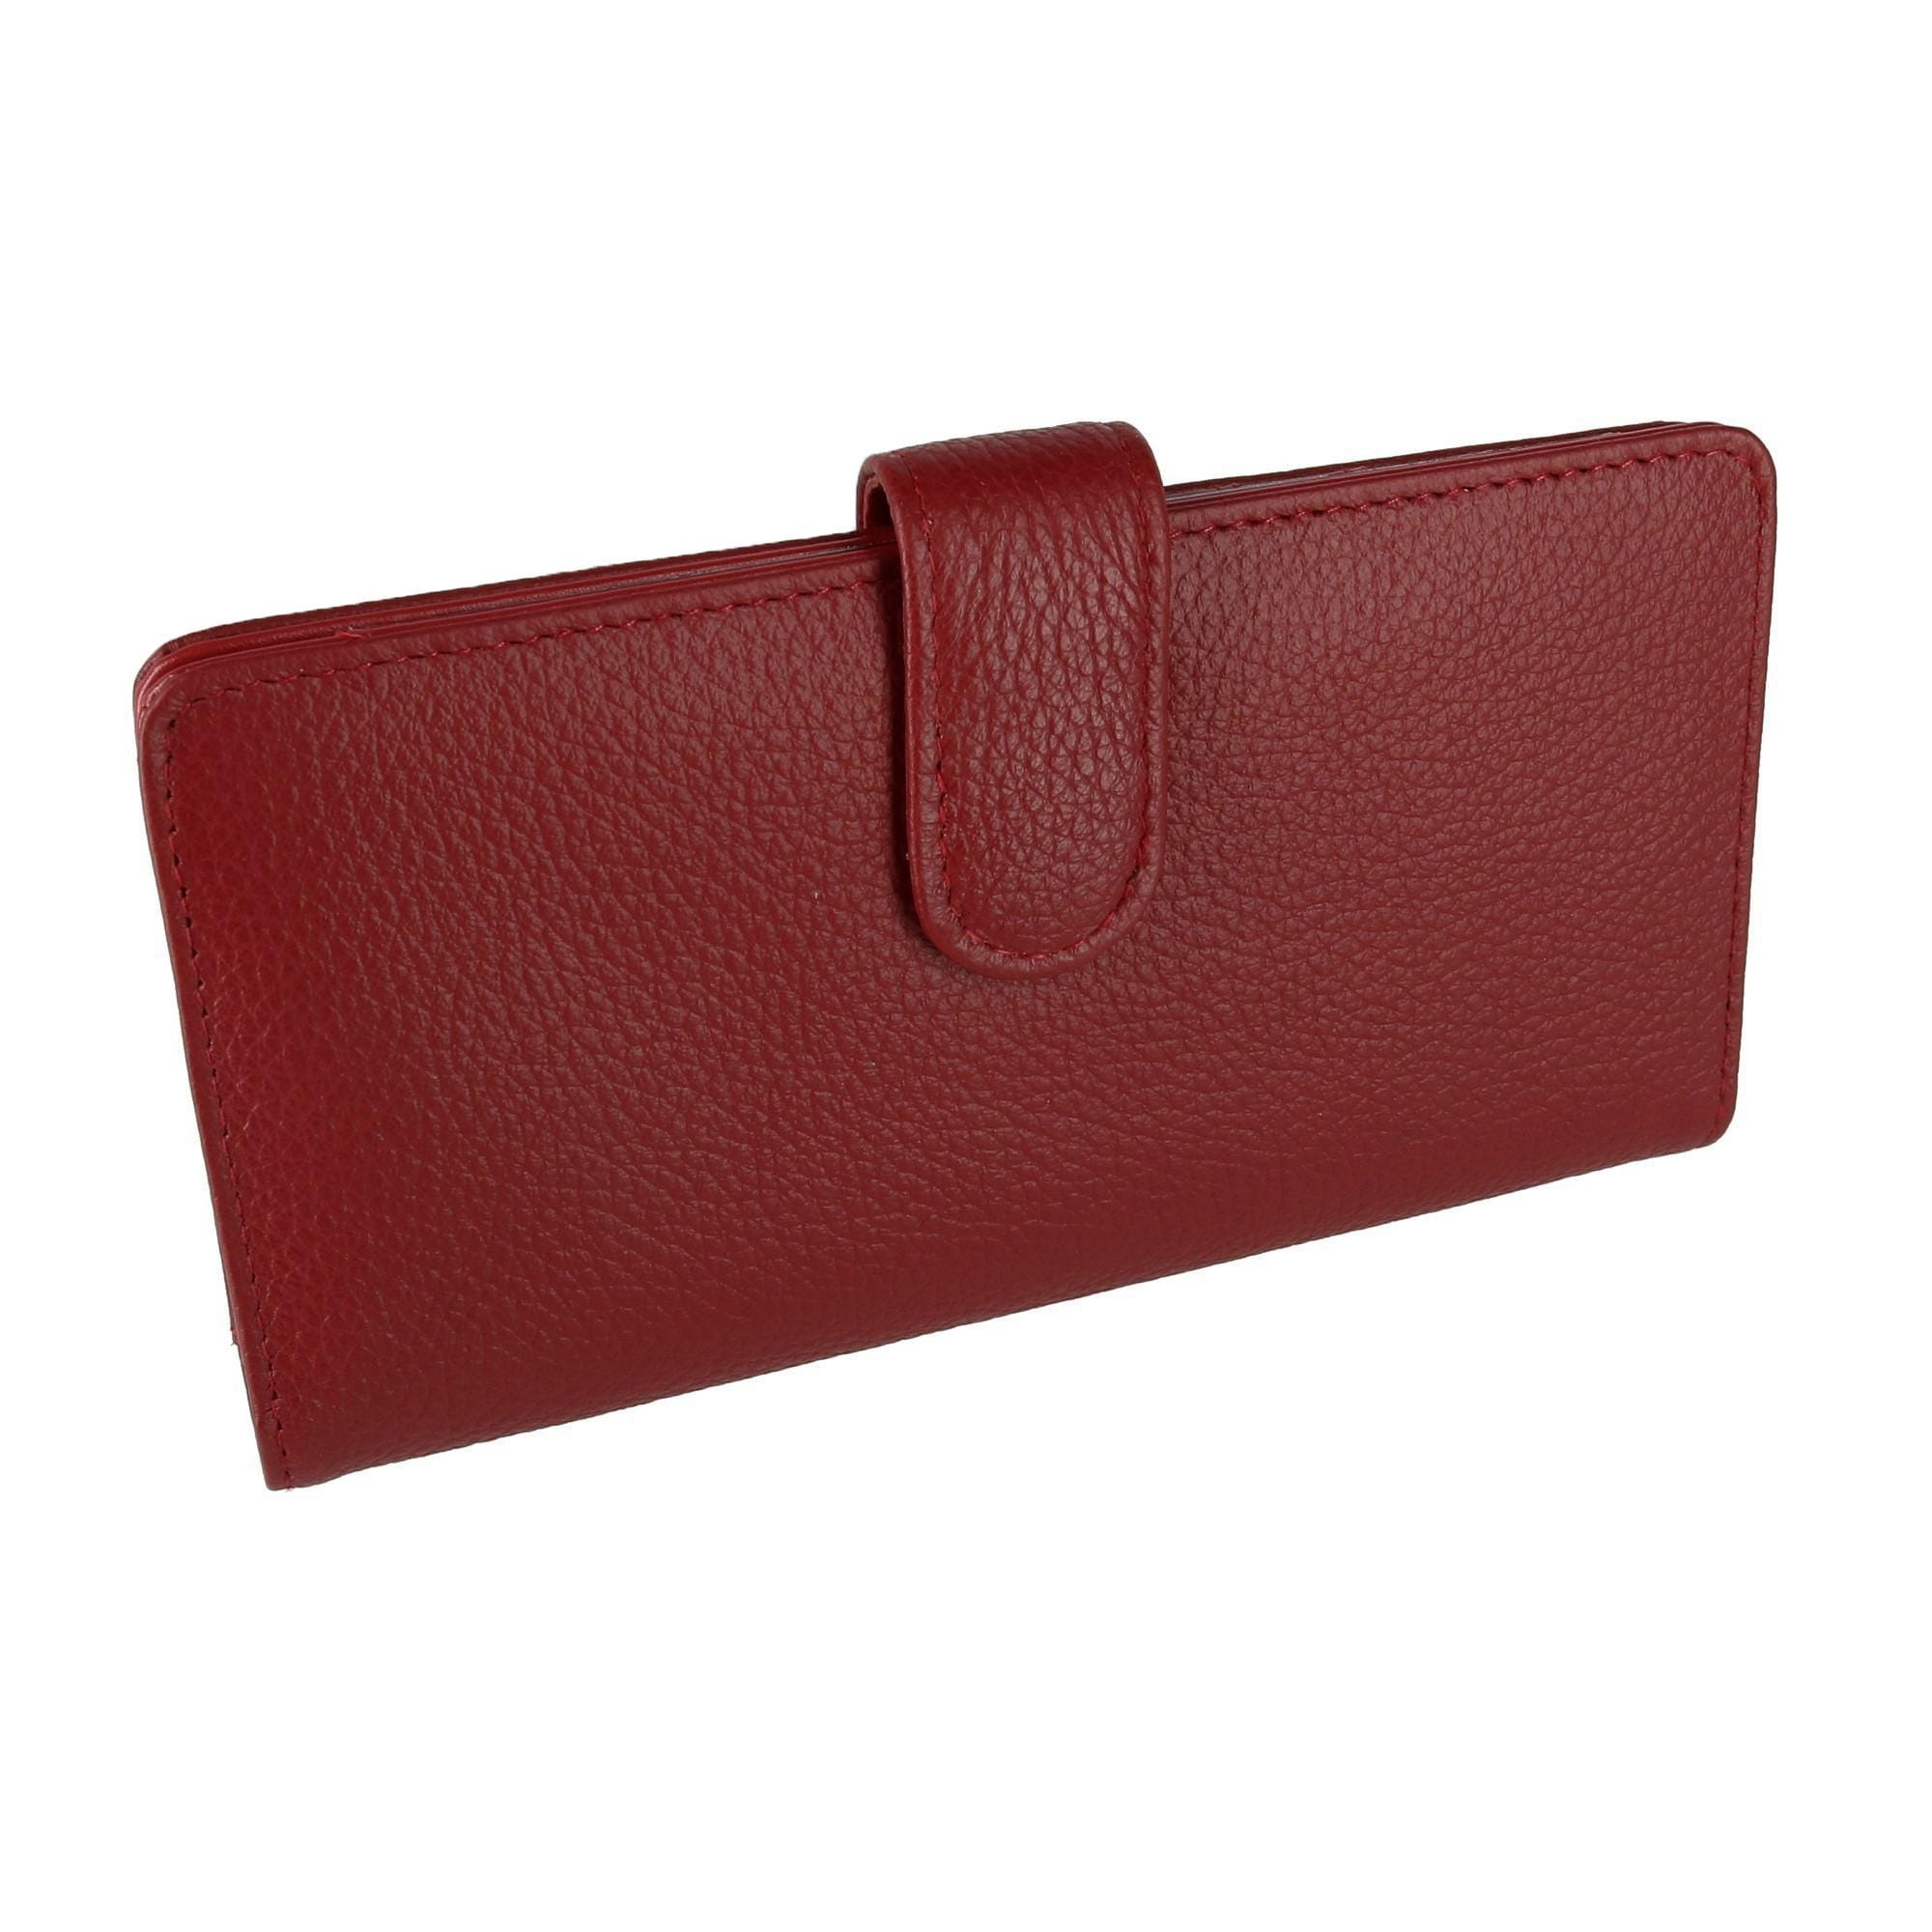 Buxton Genuine Leather Checkbook Cover,Brown